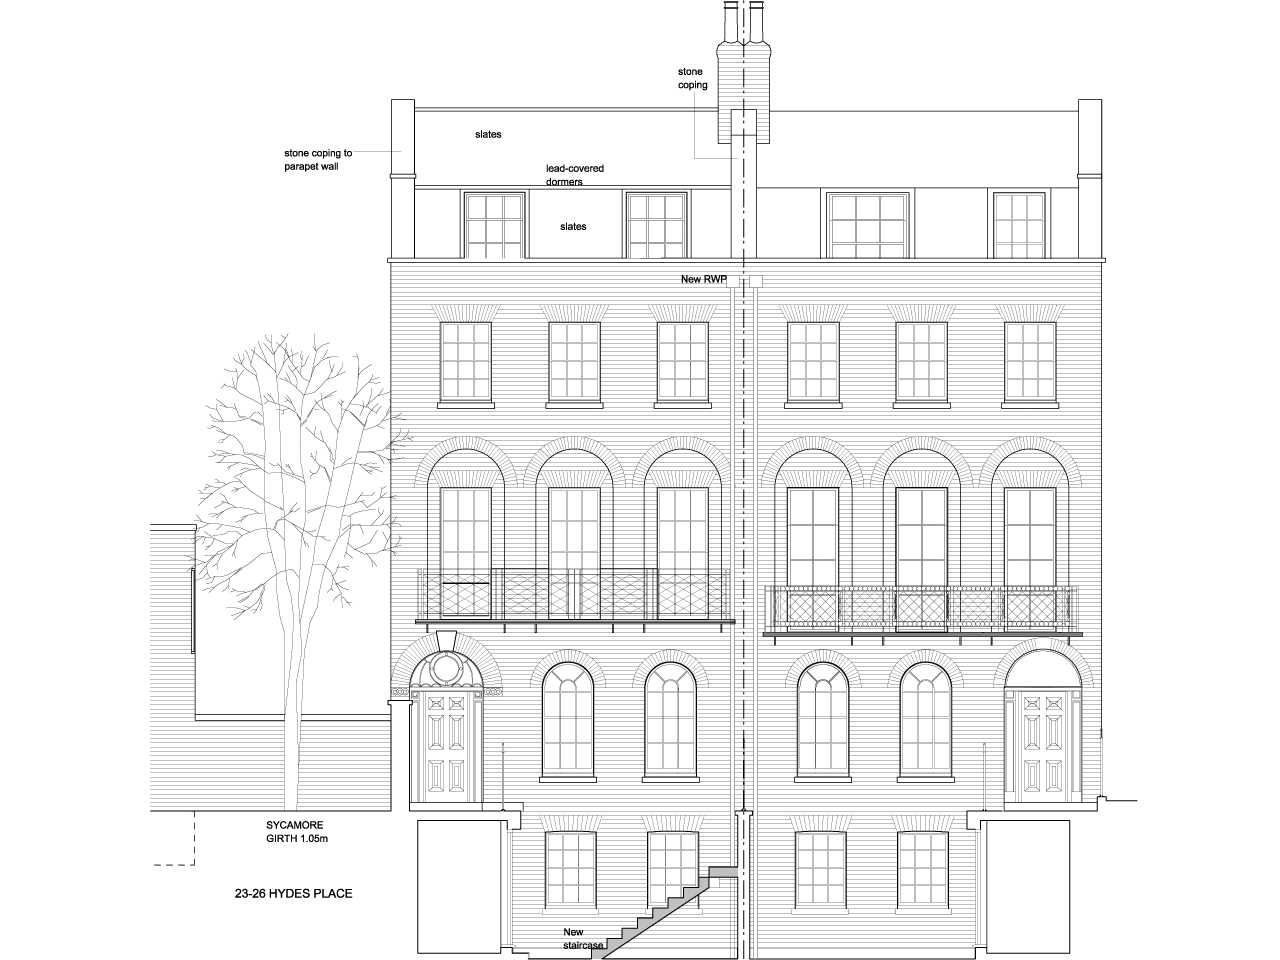 Drawings - Proposed Elevation.